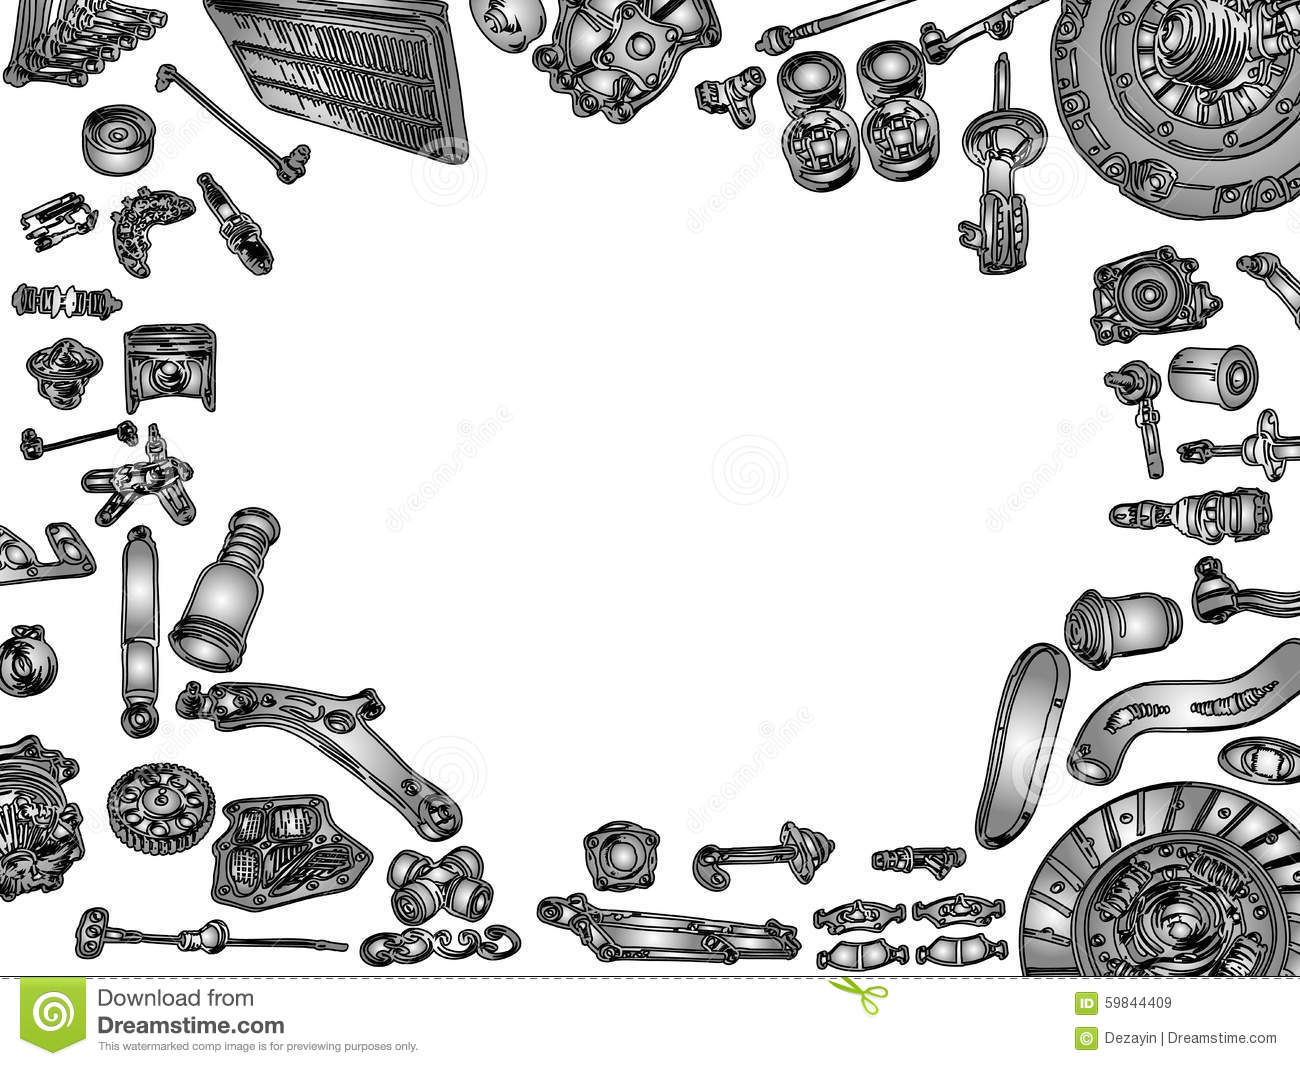 Aftermarket Spare Parts Stock Vector Illustration Of Part